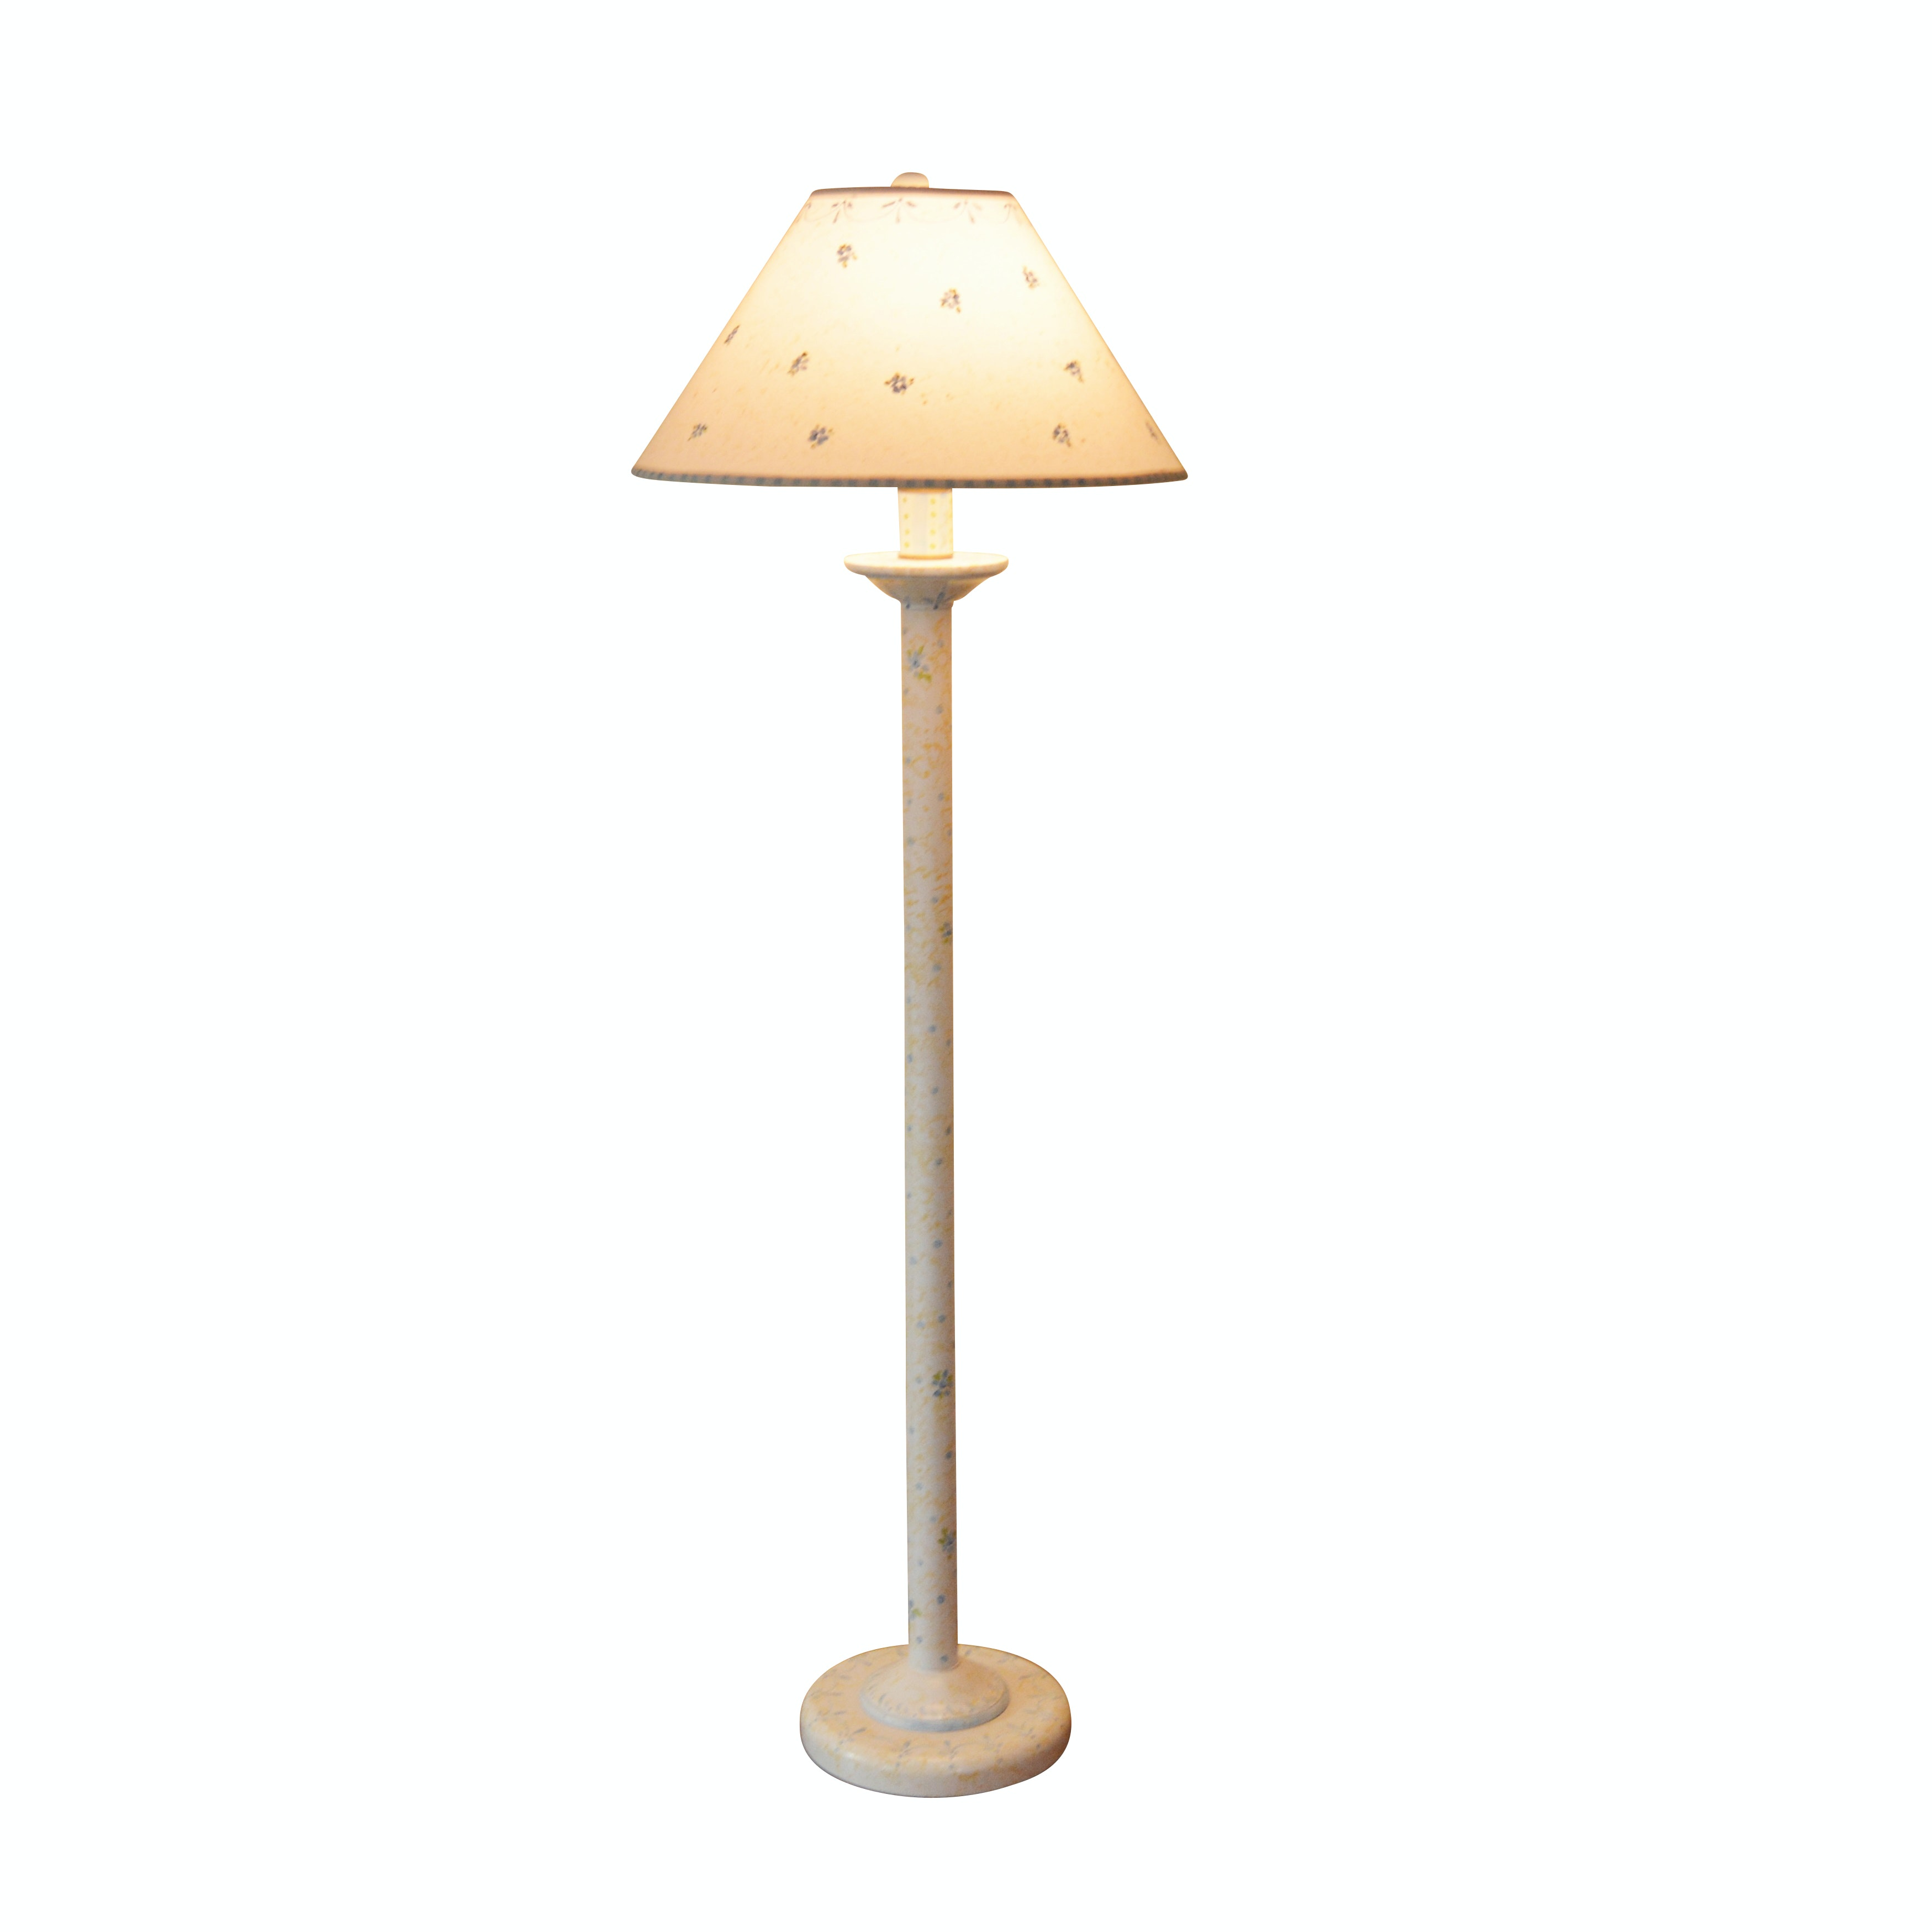 Painted Wooden Floor Lamp with Matching Shade